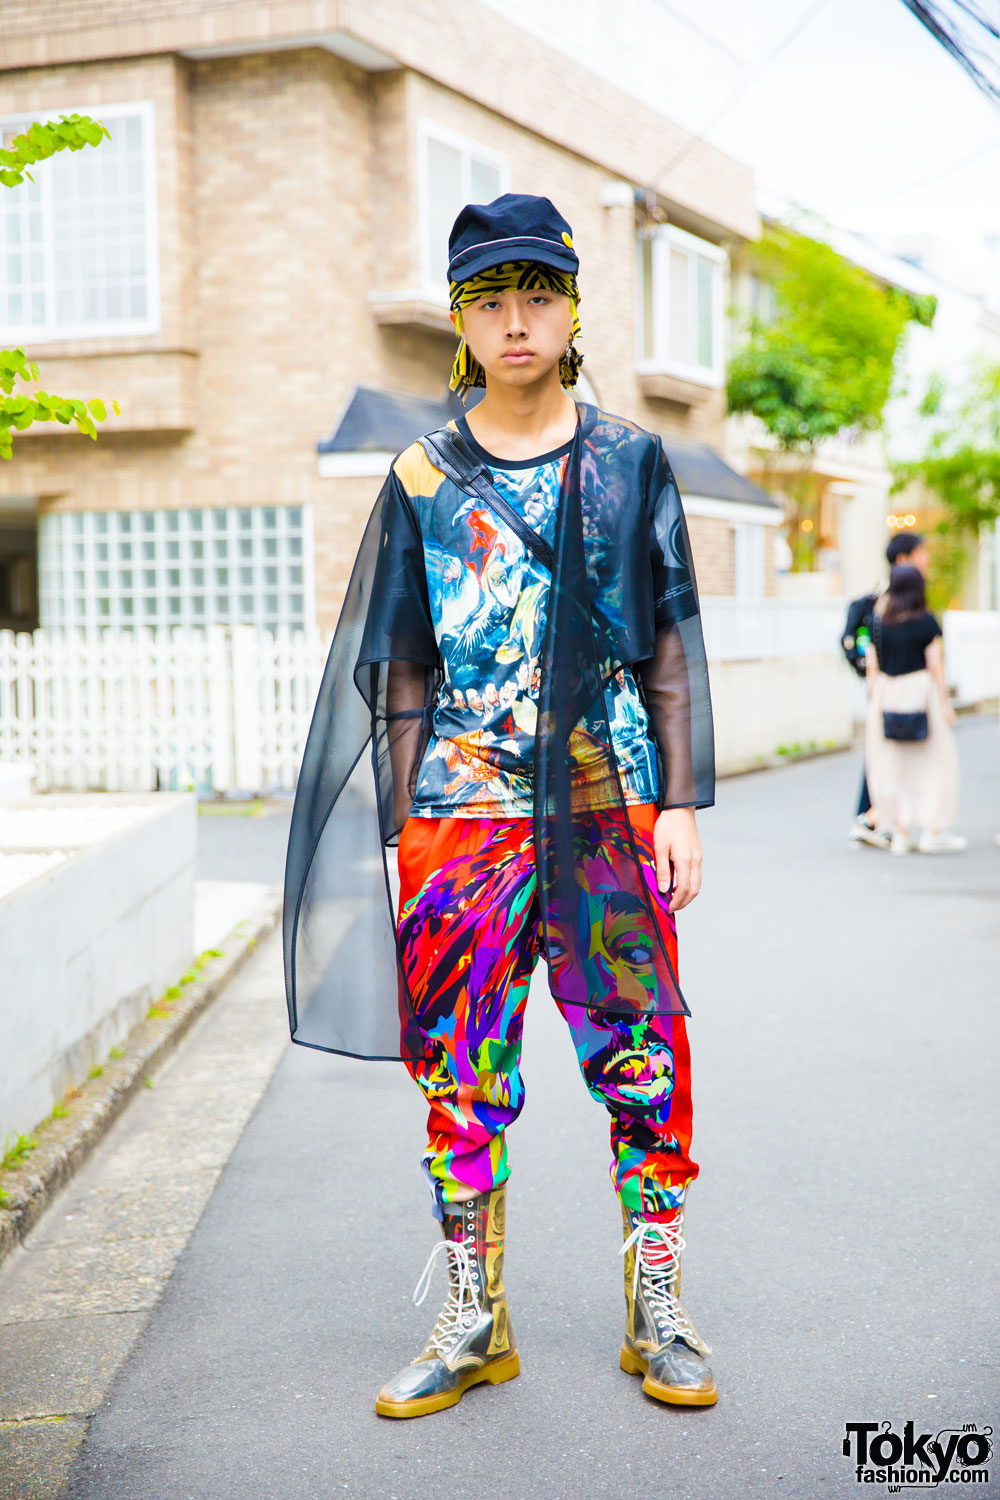 Japanese Fashion Student In Colorful Graphic Style W Dog